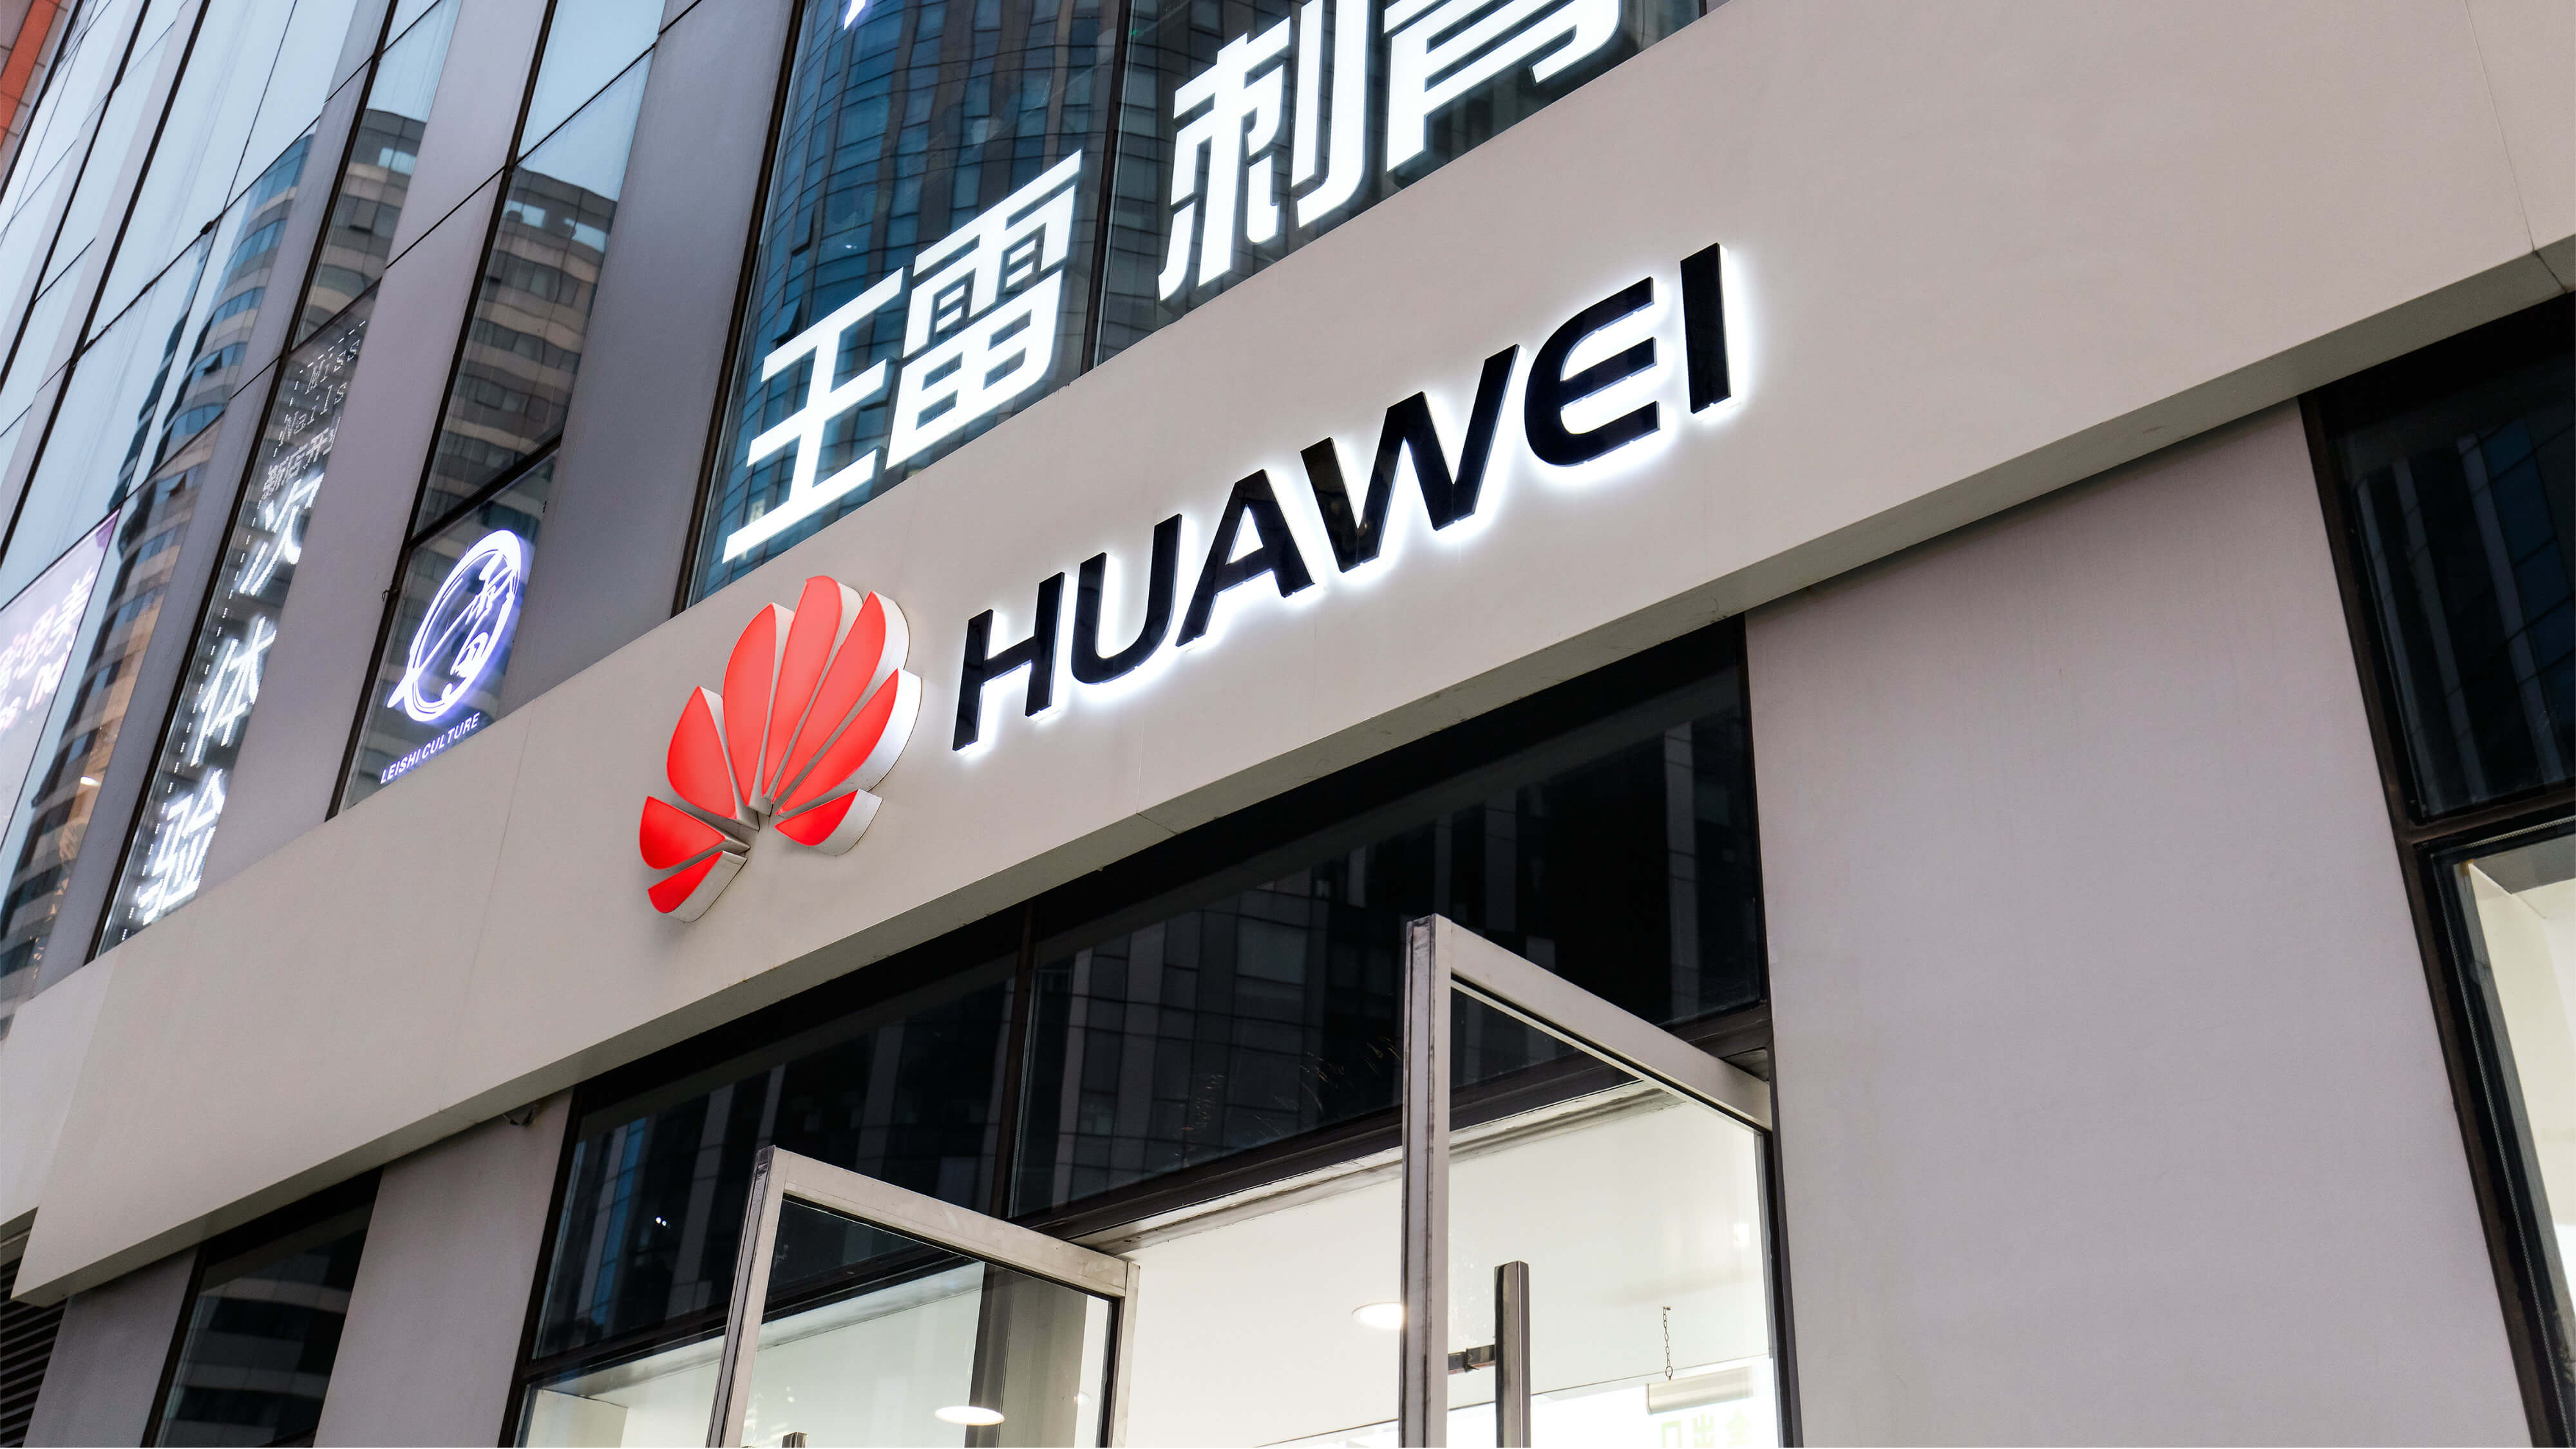 Trivia: Huawei has a Huge Business Empire Other than the Smartphones and Telecom